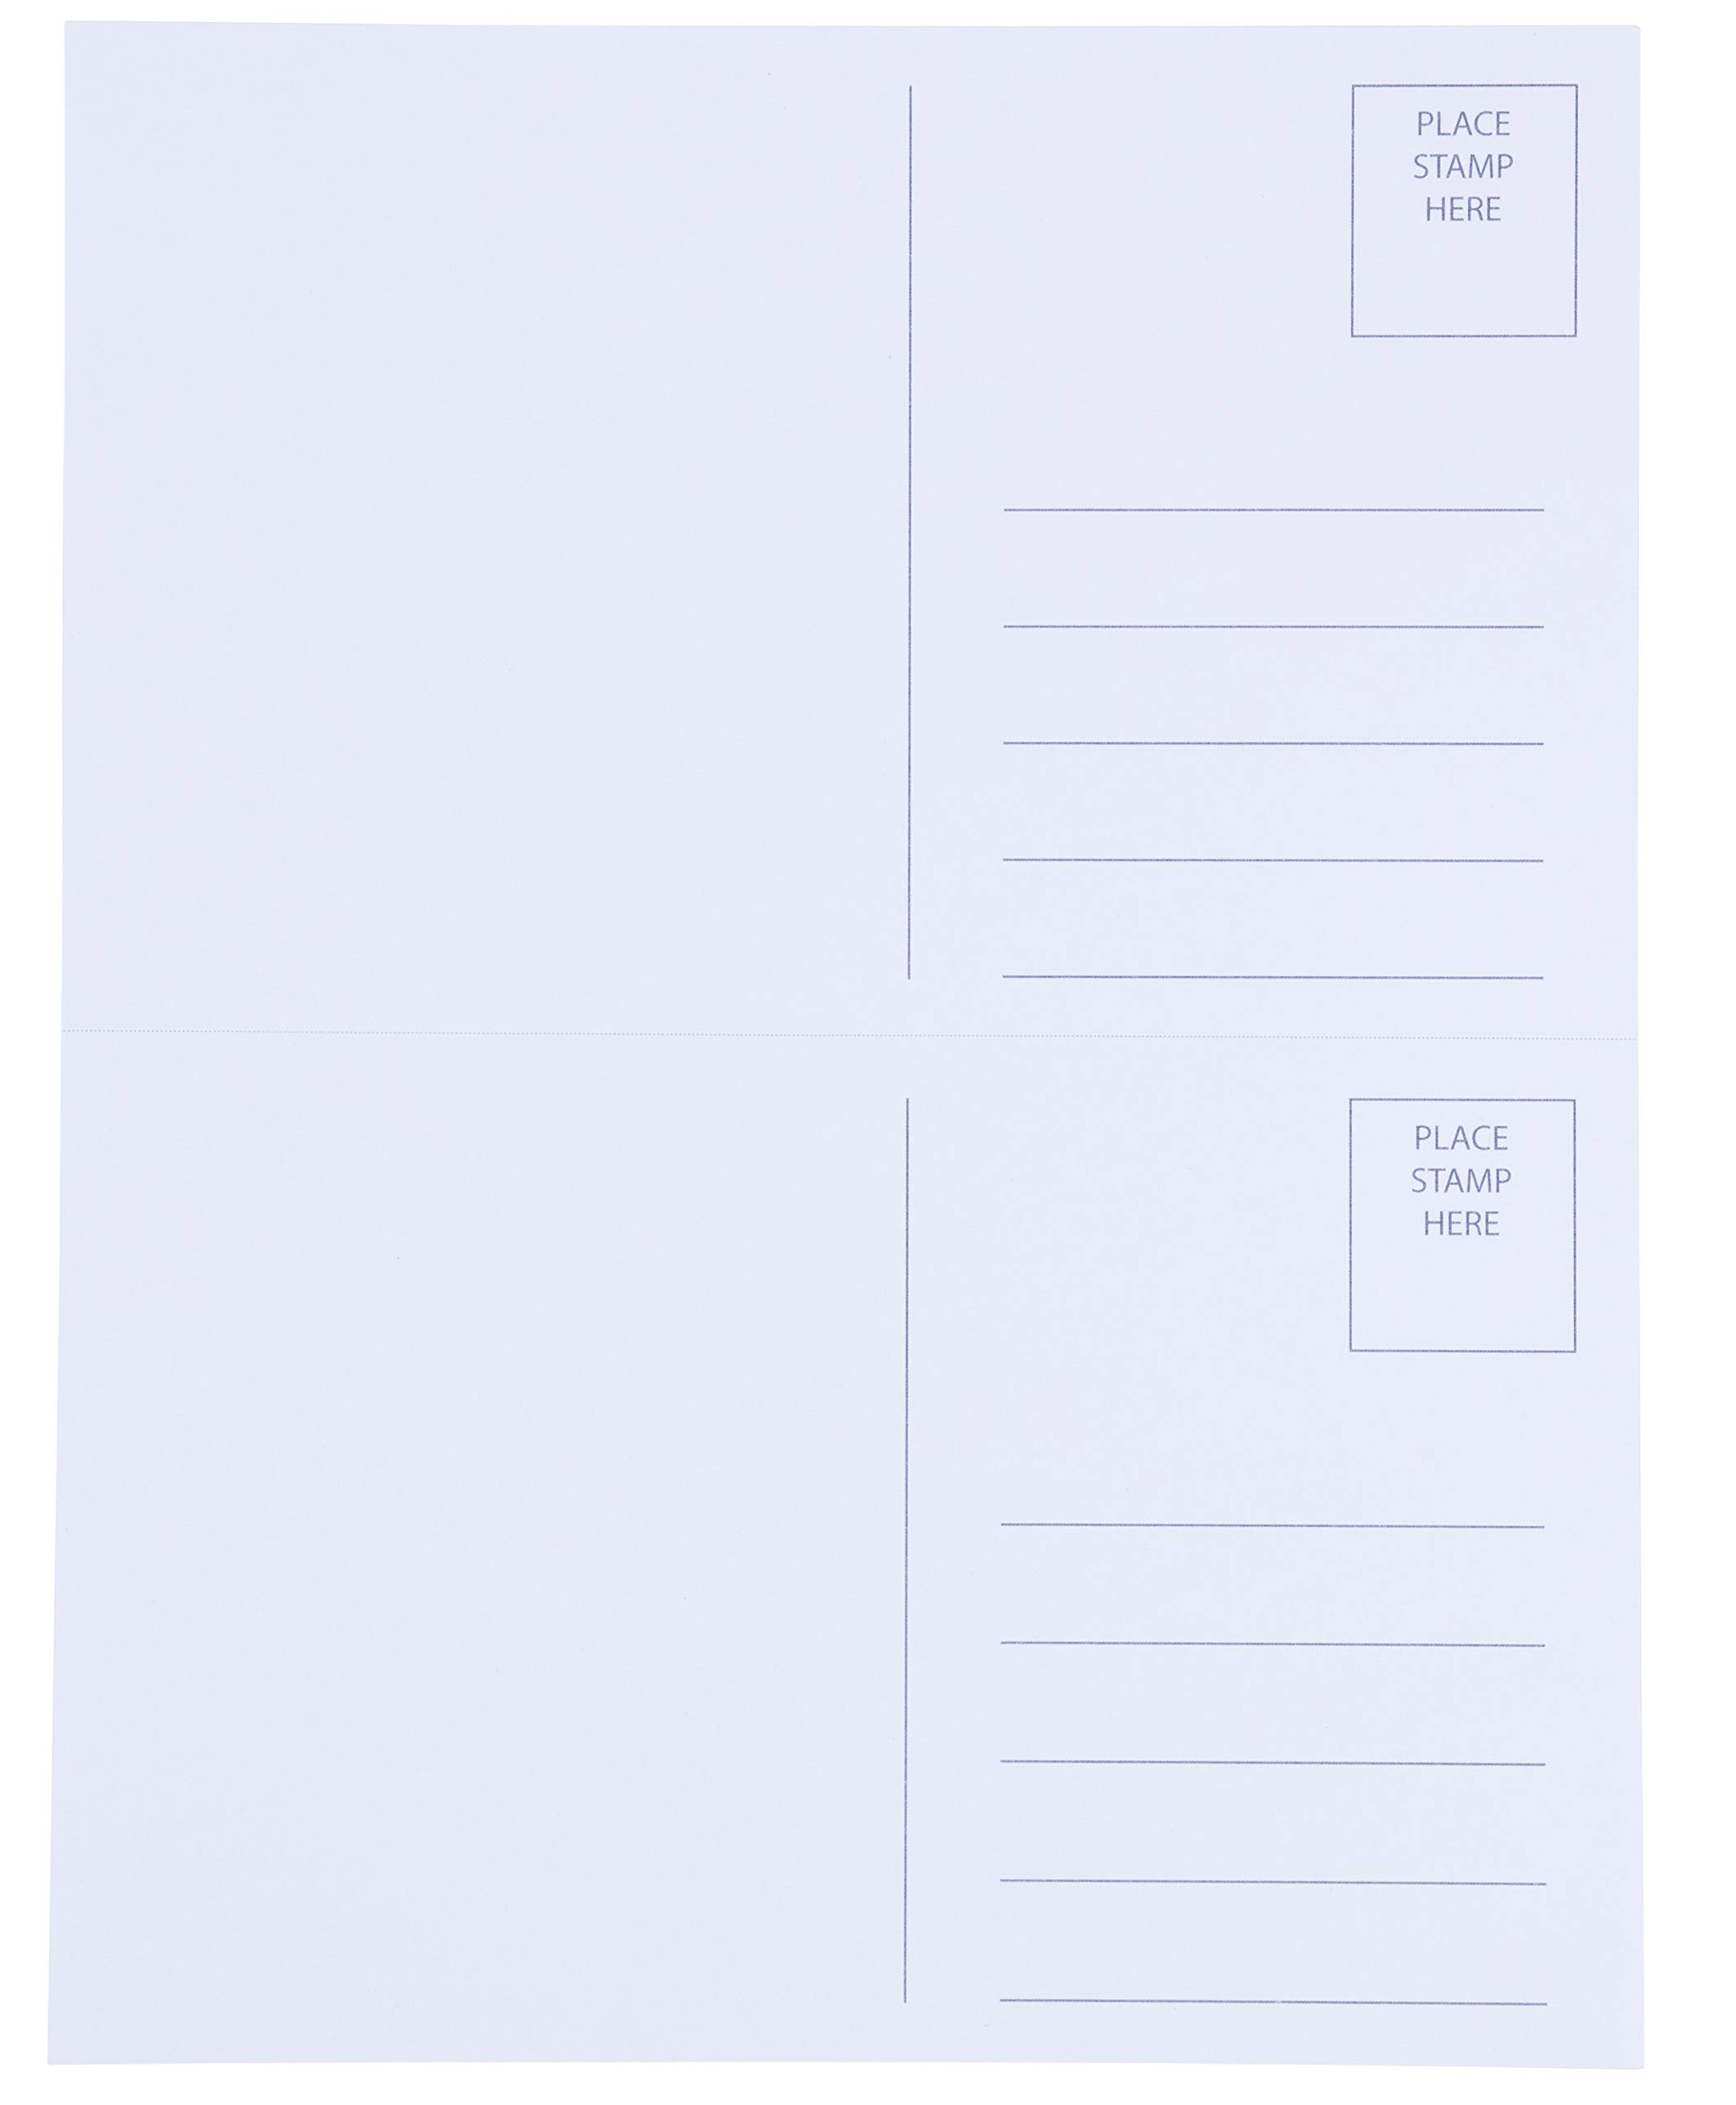 Blank Postcards - 200-Sheet 400-Cards Printable Postcards, 2-Up Perforated Laser and Inkjet Printer Postcards, Self Mailer Mailing Side Postcards, White, 8.5 x 5.5 Inches Per Postcard